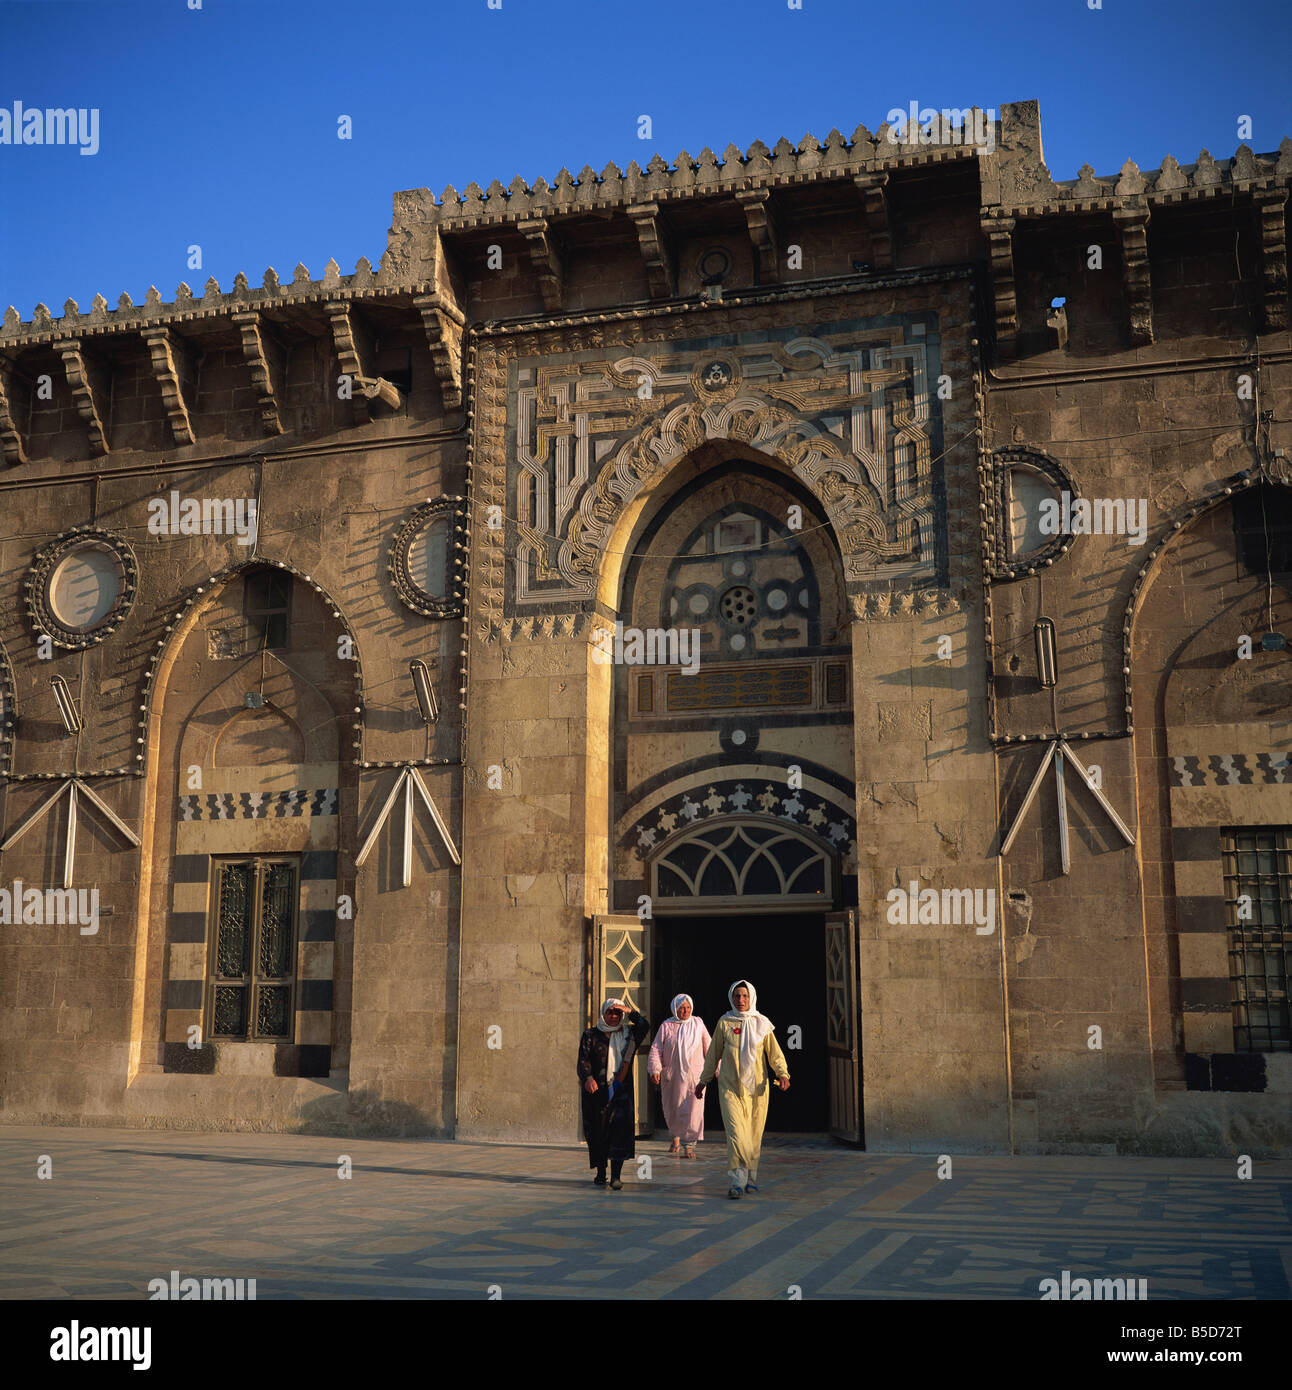 The Grand Mosque, founded in 715, Aleppo, UNESCO World Heritage Site, Syria, Middle East Stock Photo